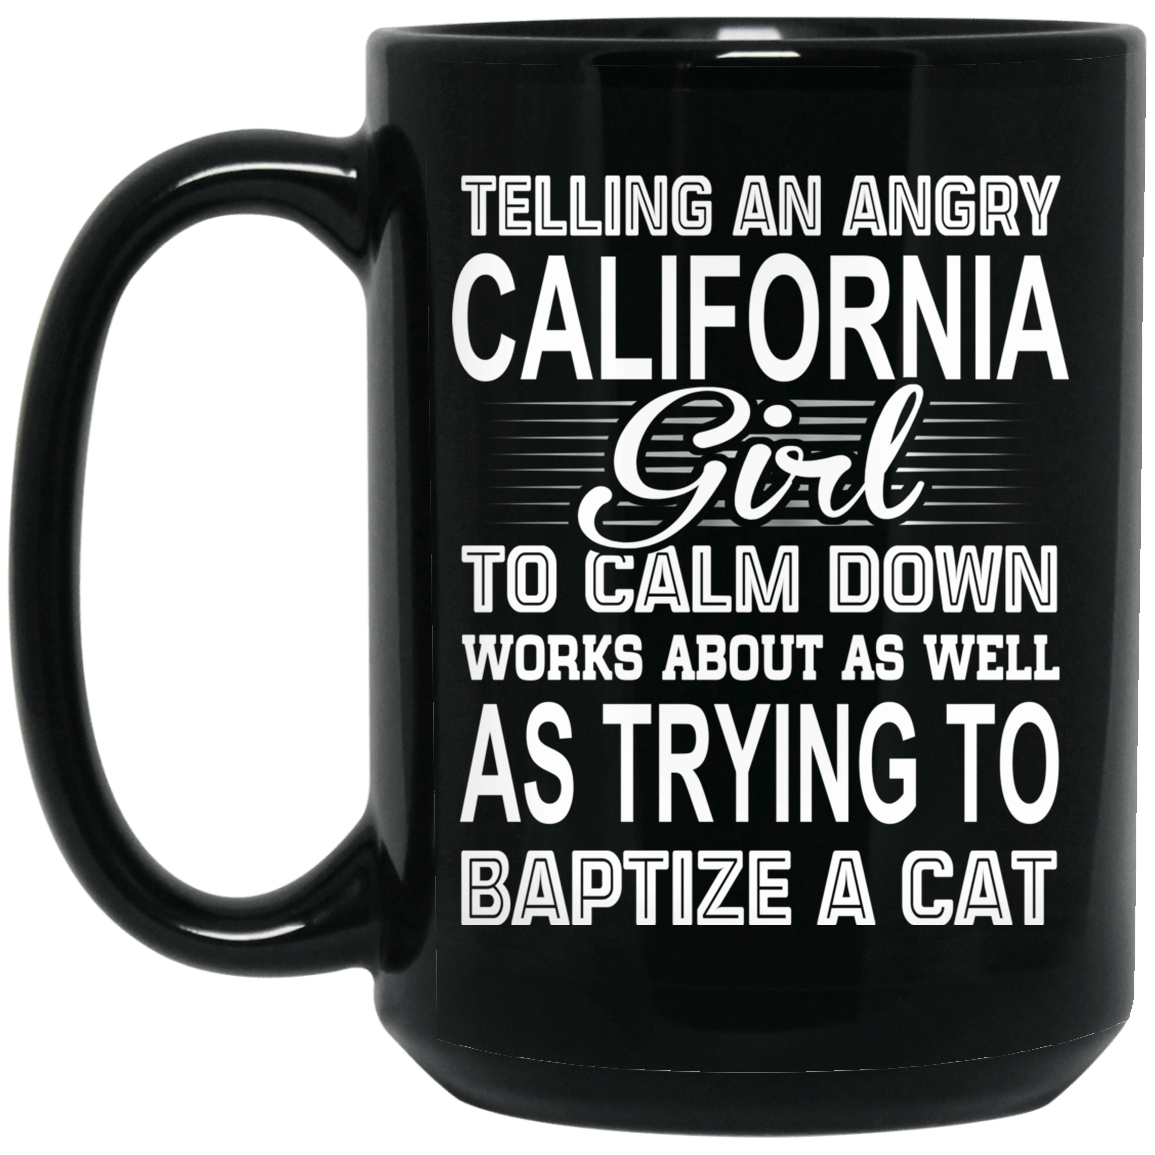 Telling An Angry California Girl To Calm Down Works About As Well As Trying To Baptize A Cat Mug 1066-10182-76151923-49311 - Tee Ript